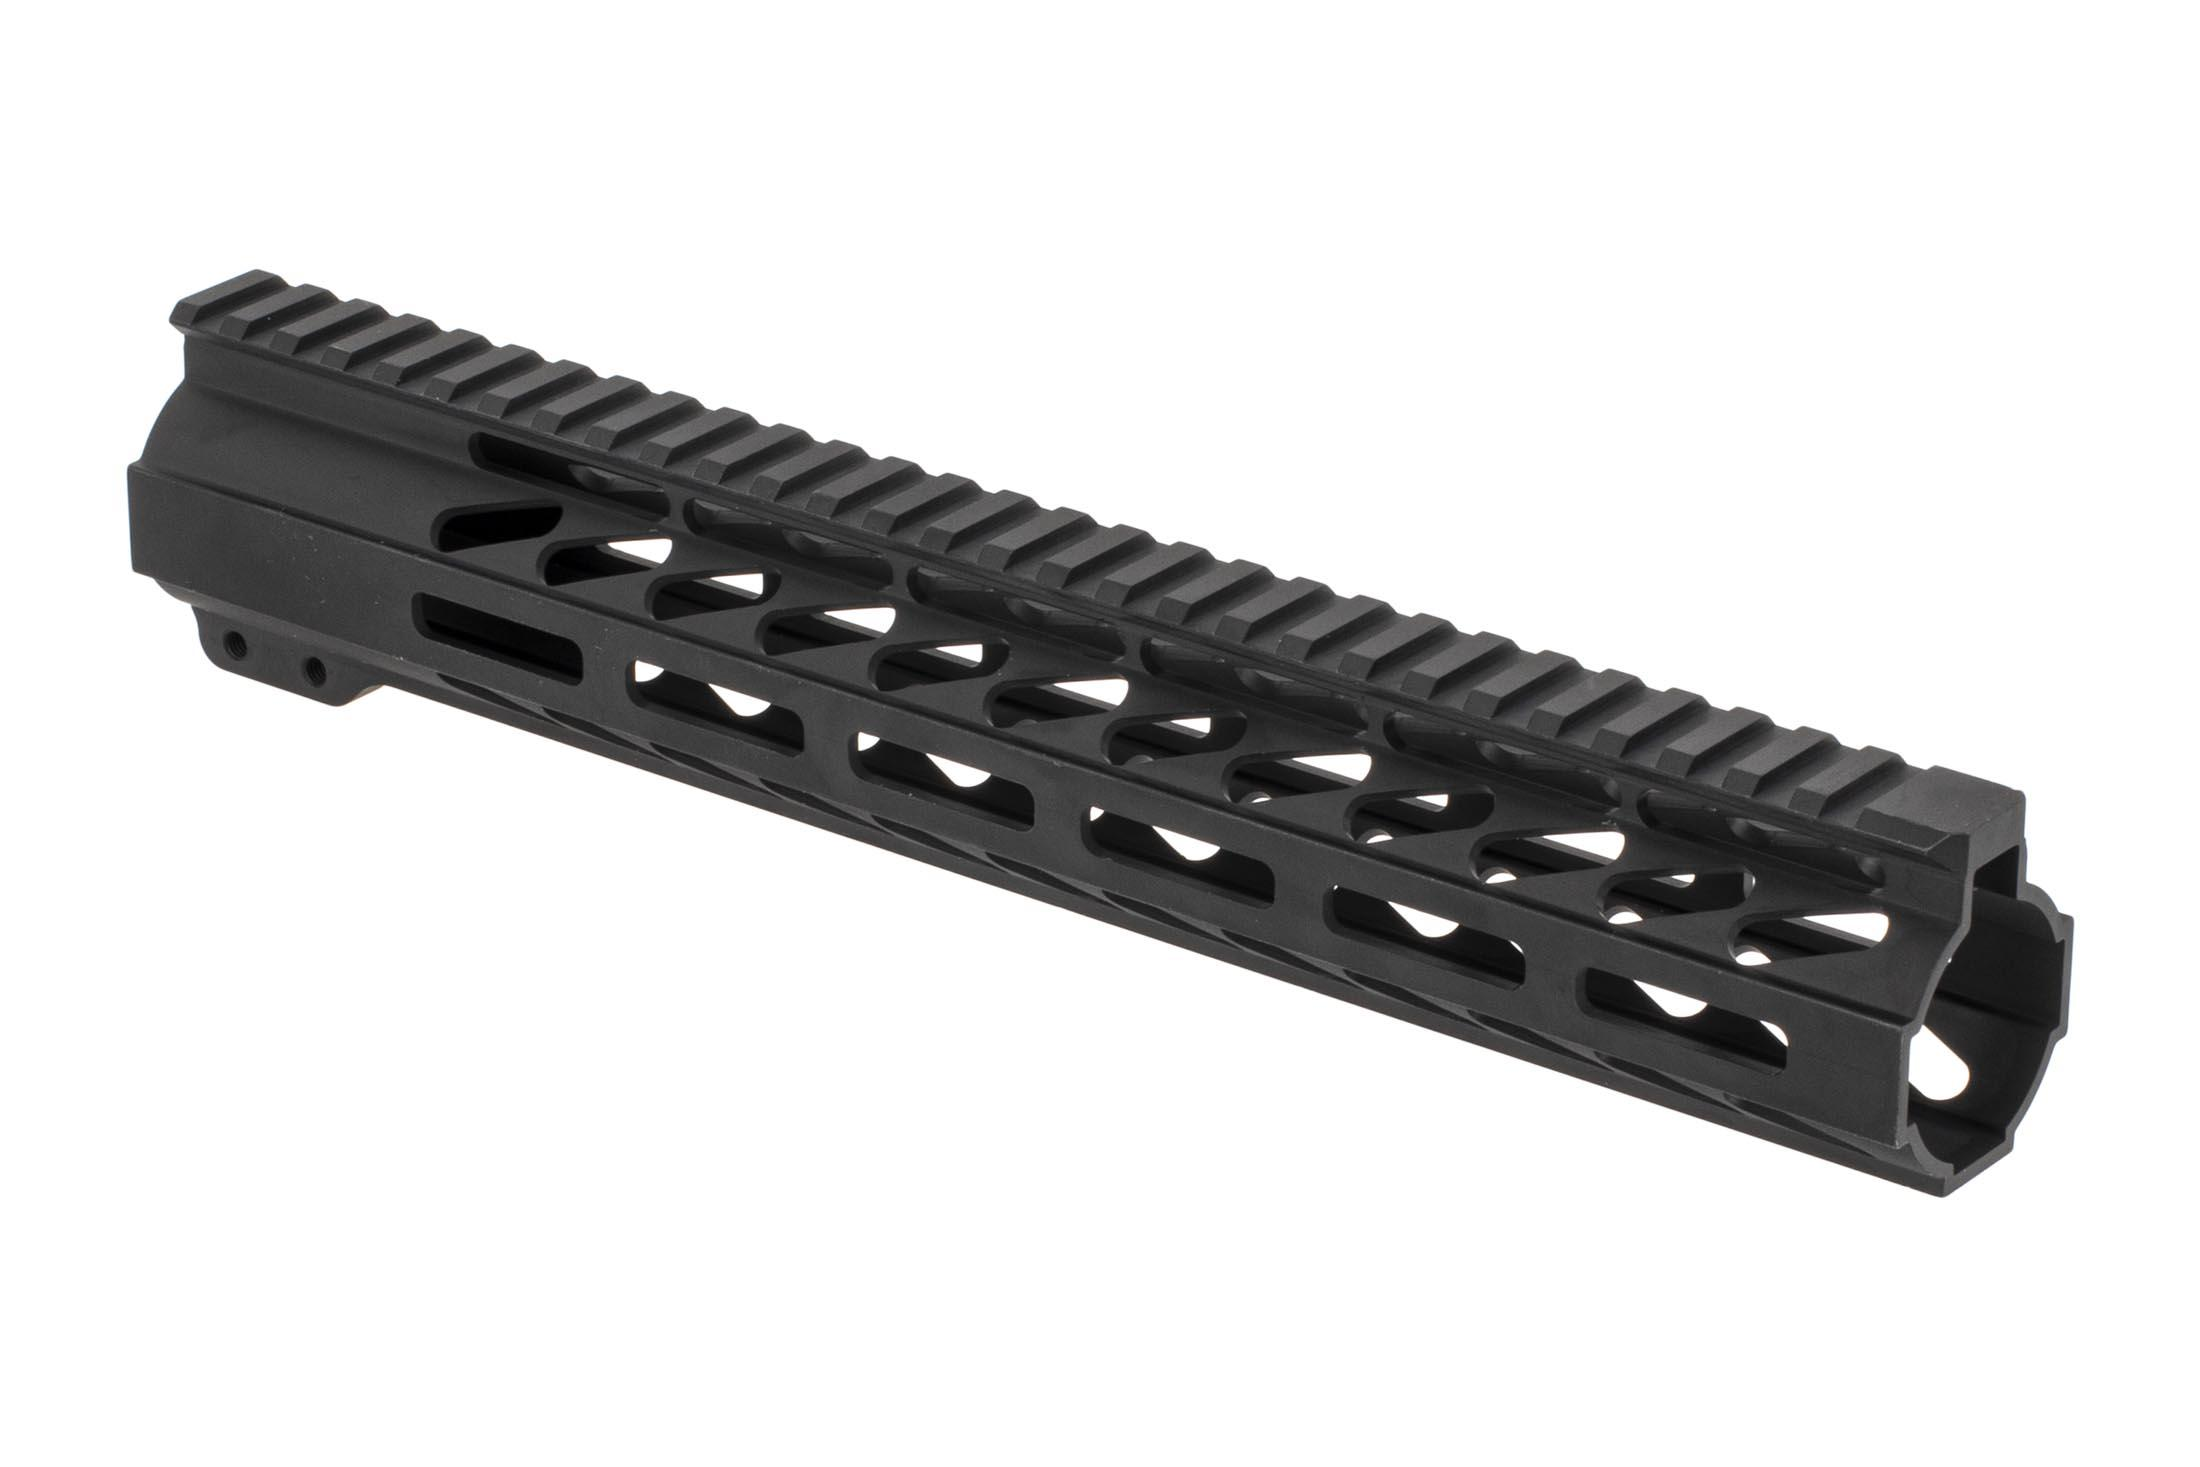 Ghost Firearms 12 free float M-LOK handguard for the AR-15 with black anodized finish and no logos.